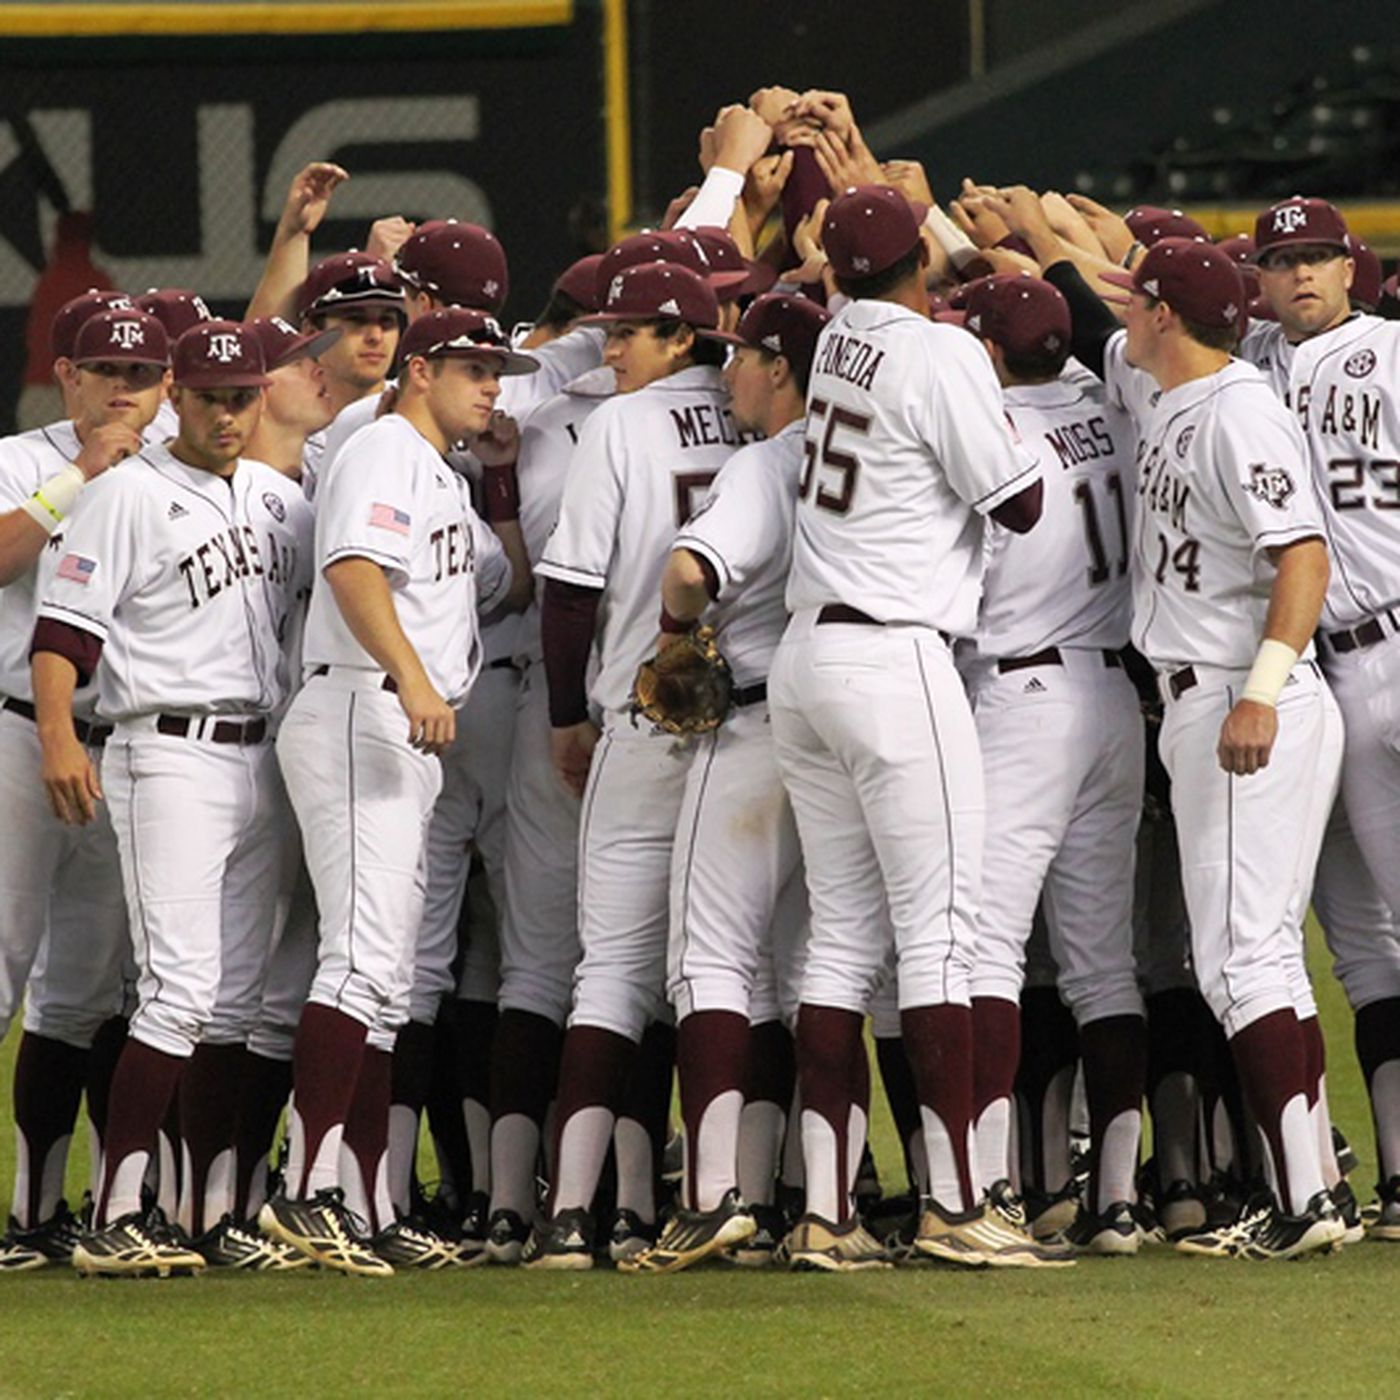 Best Baseball Team 2020 Texas A&M Aggies baseball team will play in 2020 Frisco Classic